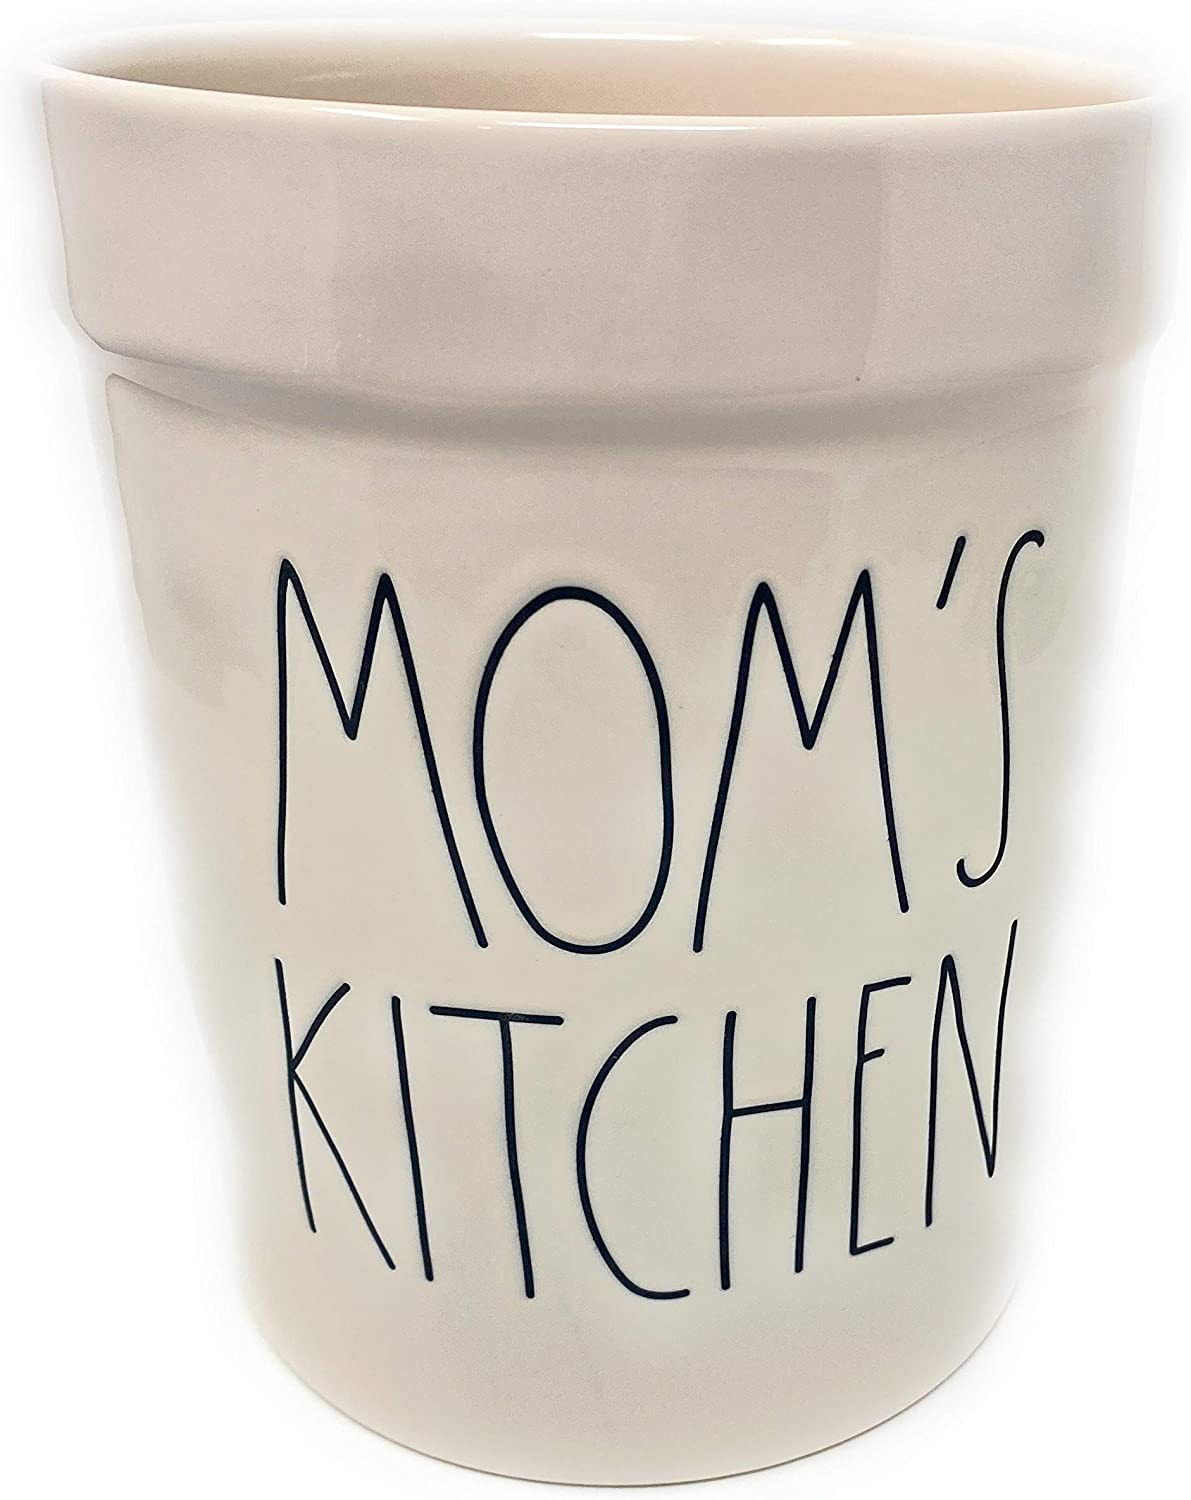 Rae Dunn Challenge the lowest price Mom's Kitchen 2021new shipping free Utensils Crock Jar - Large Tools